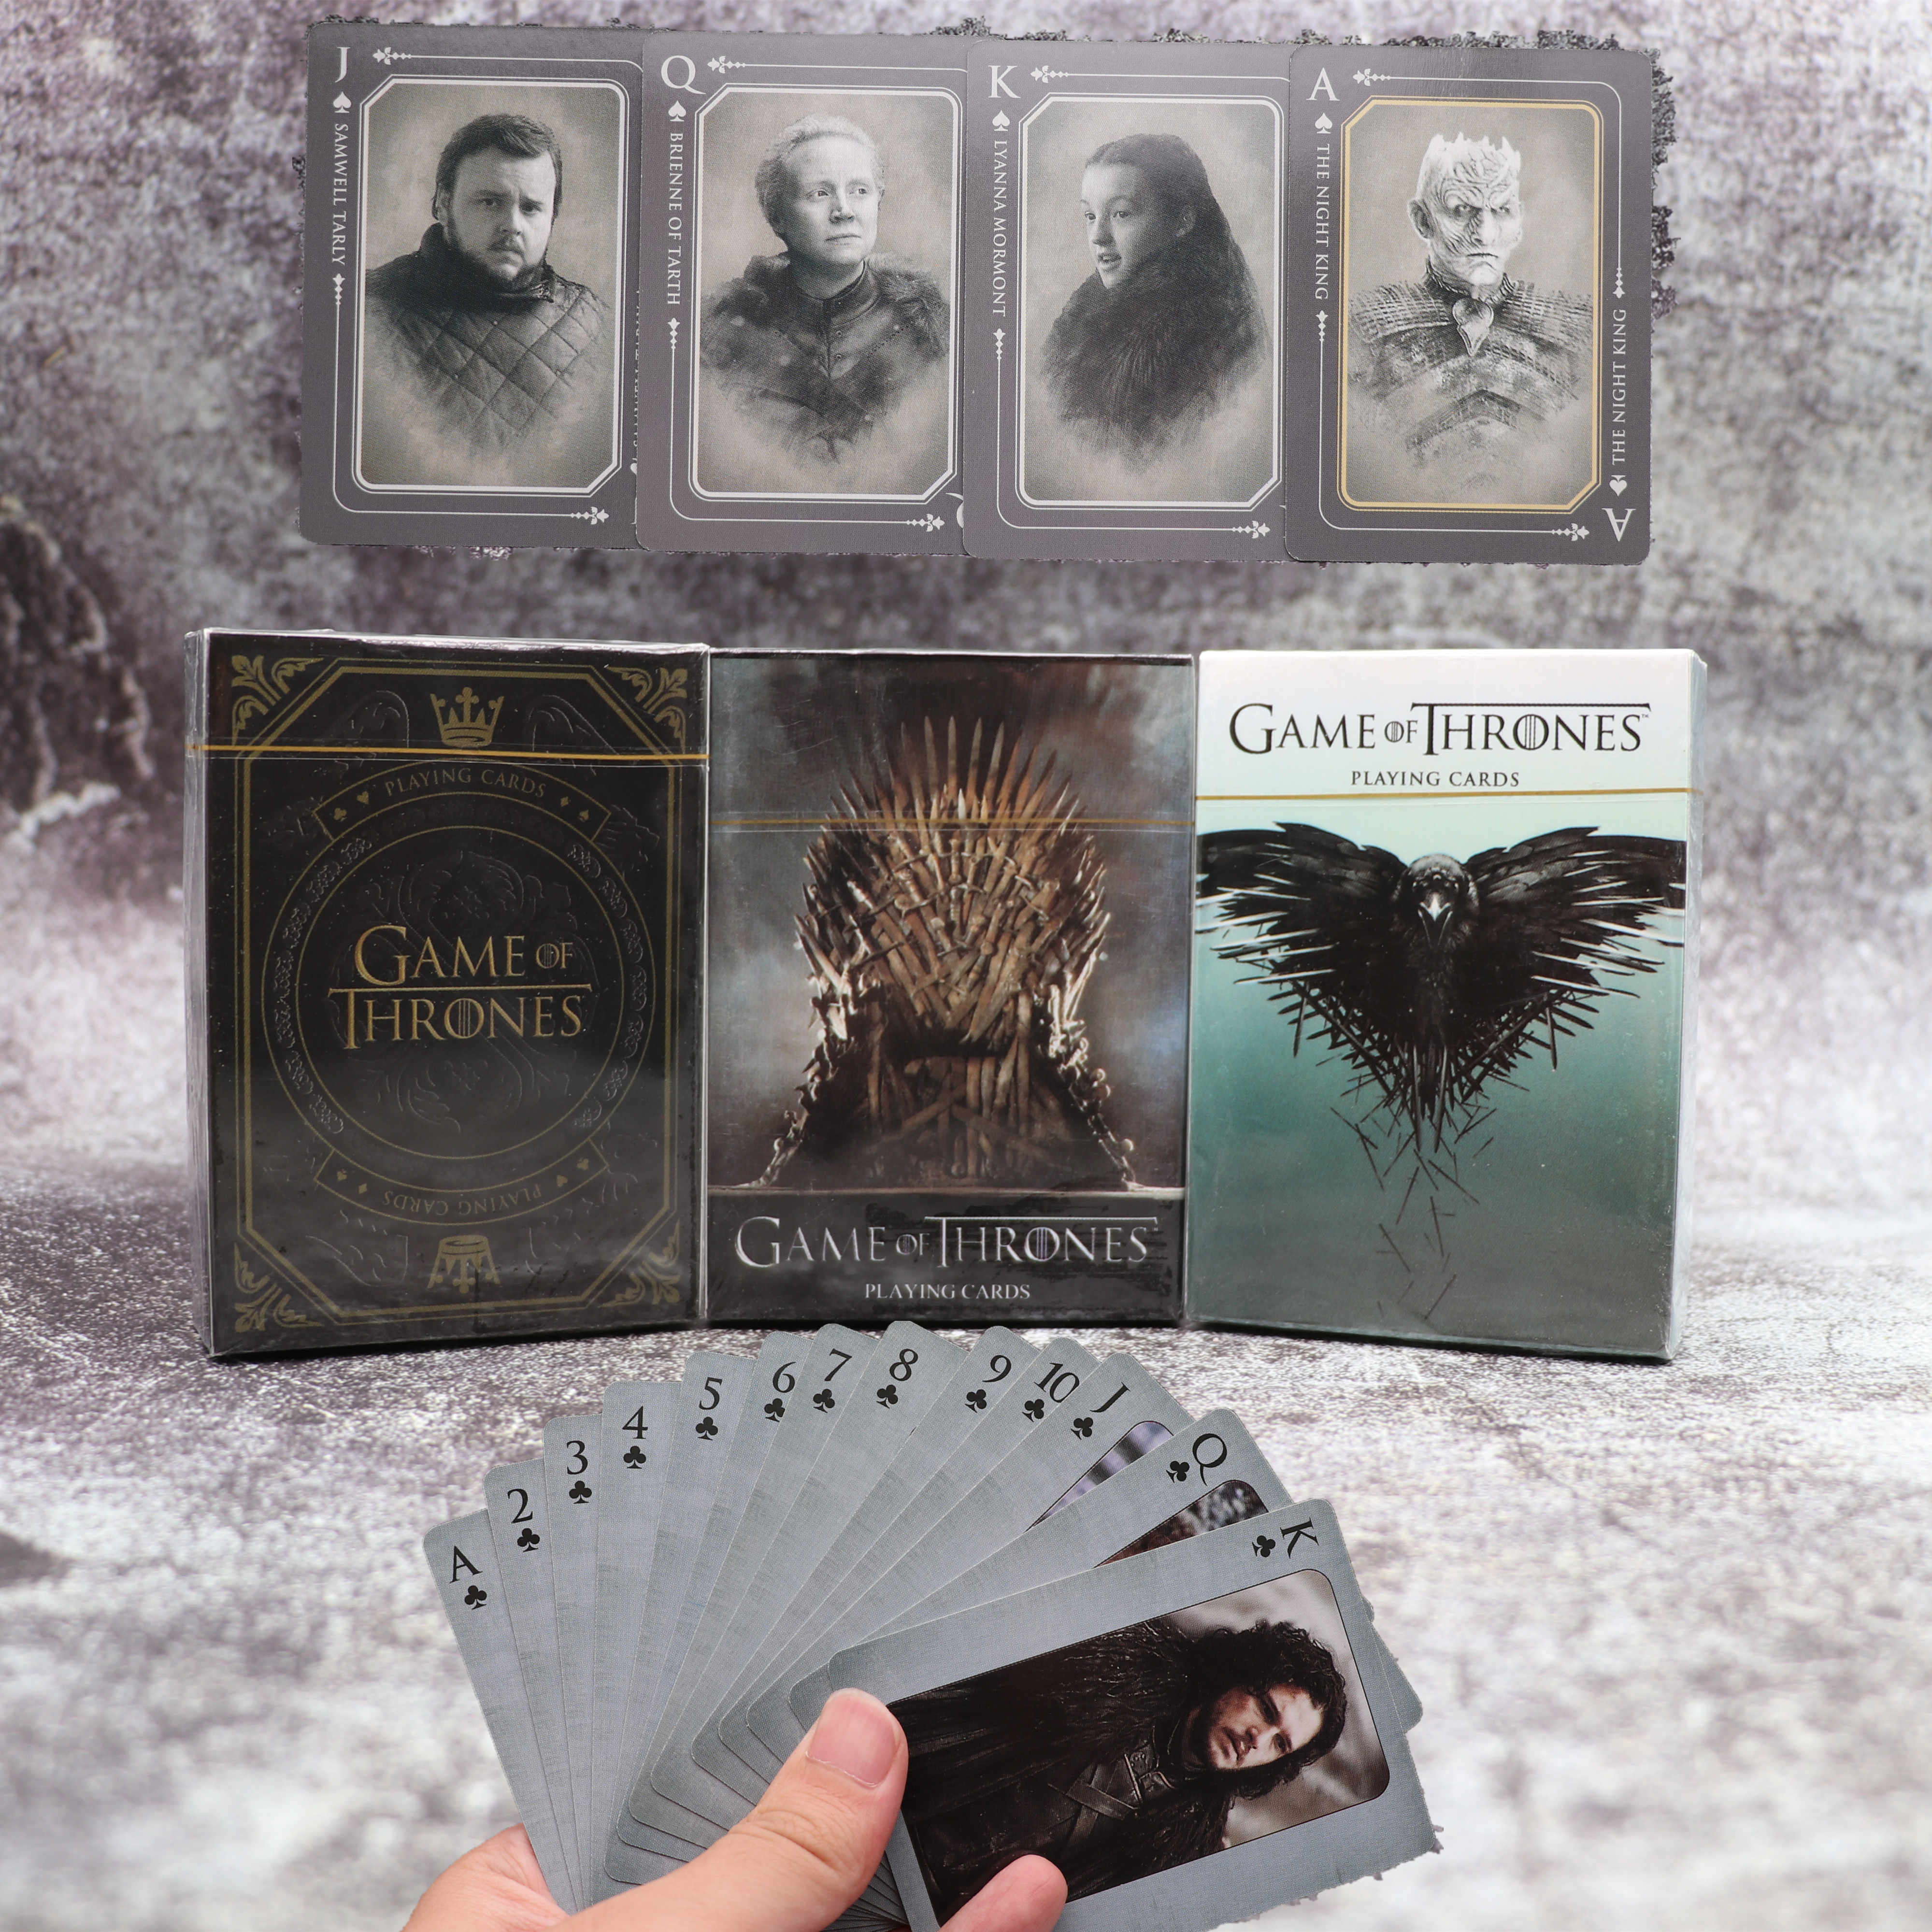 Movie Game Of Thrones Cosplay Props Stark Jon Sneeuw Daenerys Targaryen Dany Dragon Moeder Speelkaarten Bordspel Verzamelen Gift